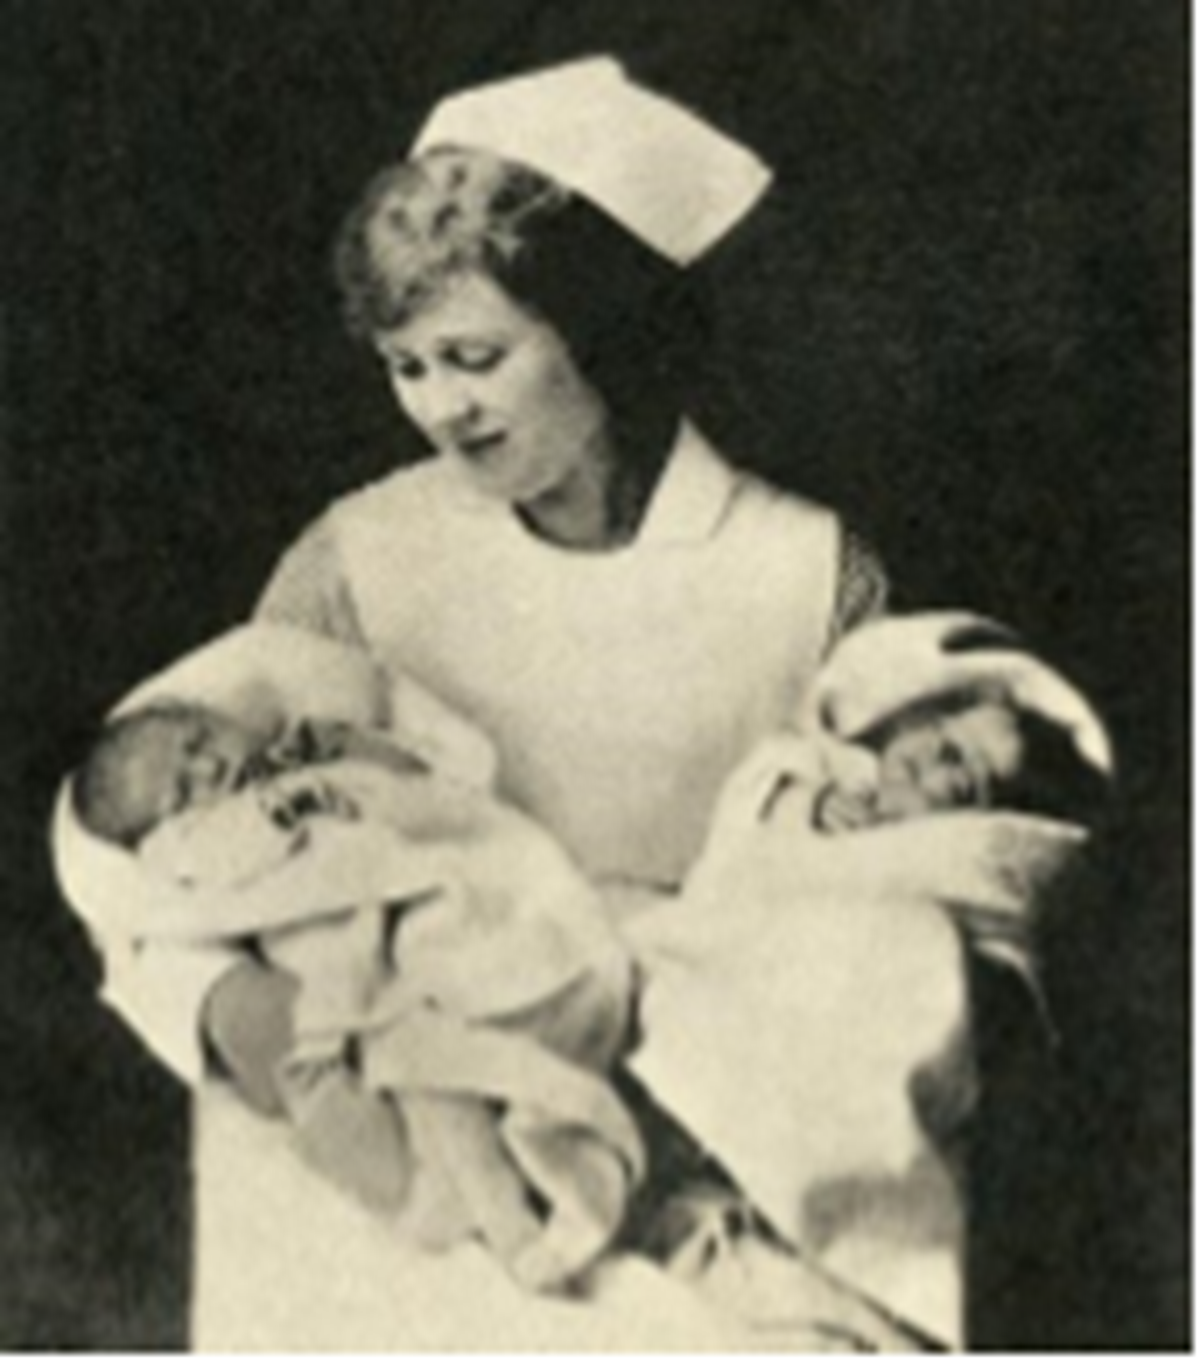 Centennial Stories: Childbirth changes with the times